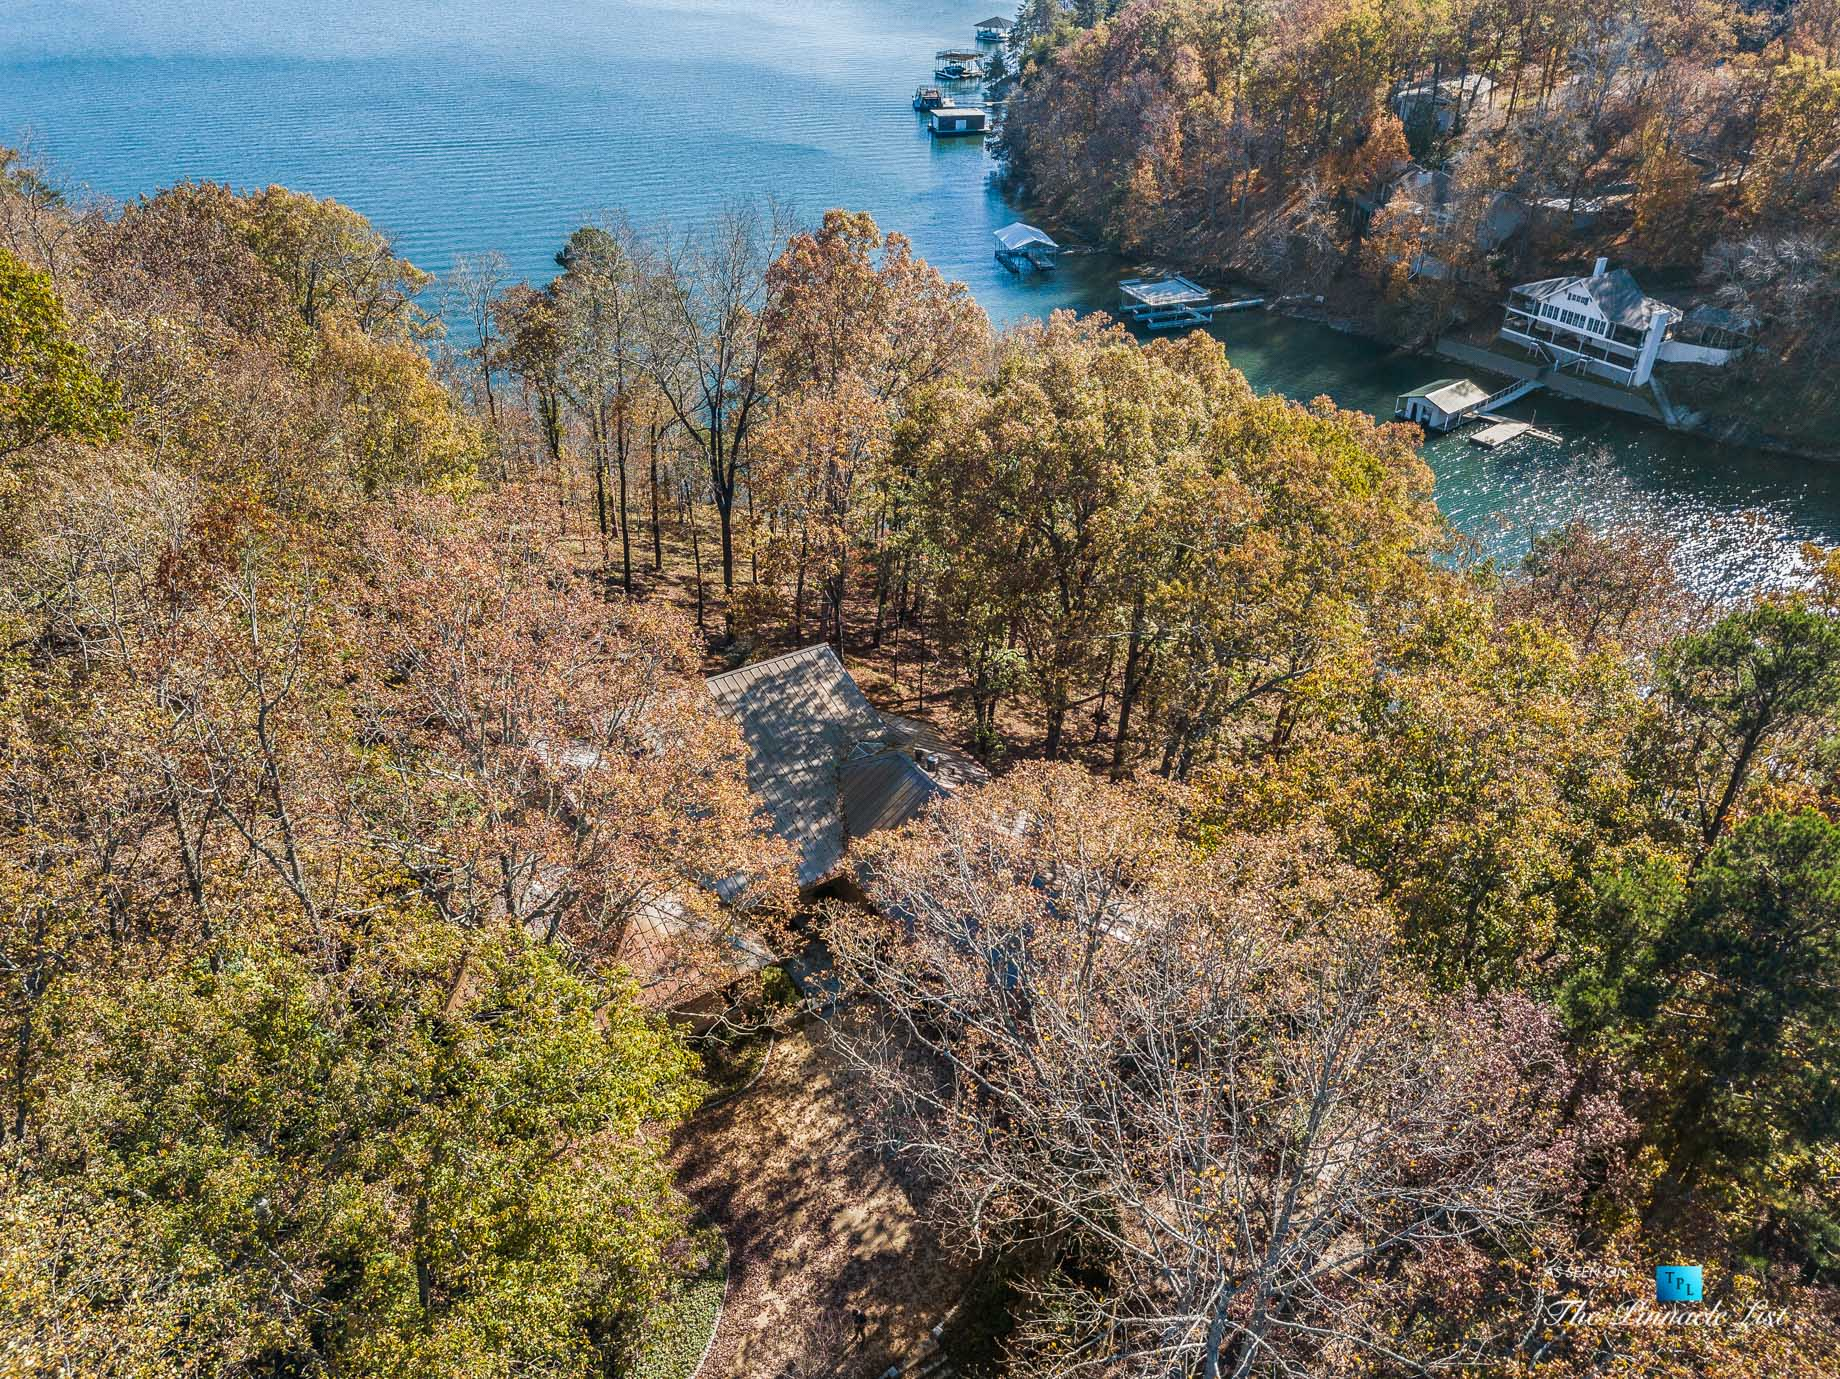 7860 Chestnut Hill Rd, Cumming, GA, USA - Drone Aerial Lake View - Luxury Real Estate - Lake Lanier Mid-Century Modern Stone Home